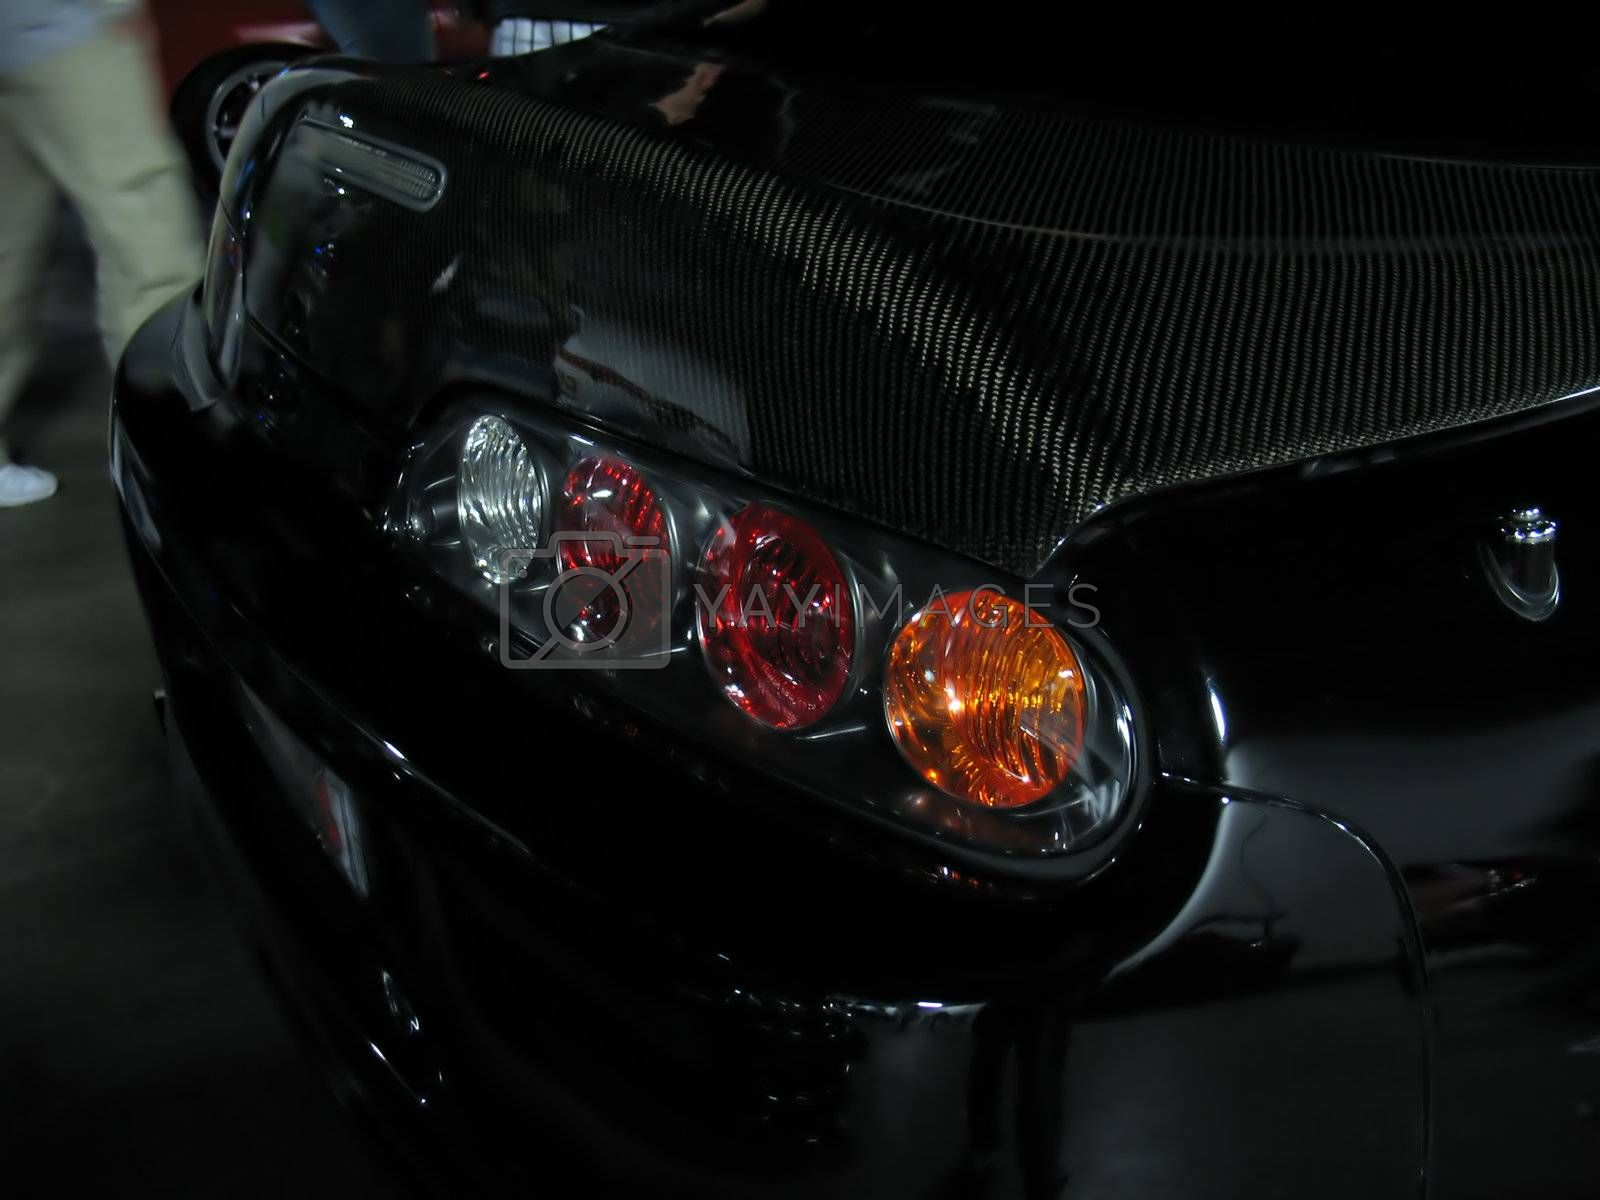 a closeup of a customized import sports car - complete with a carbon fiber trunk.